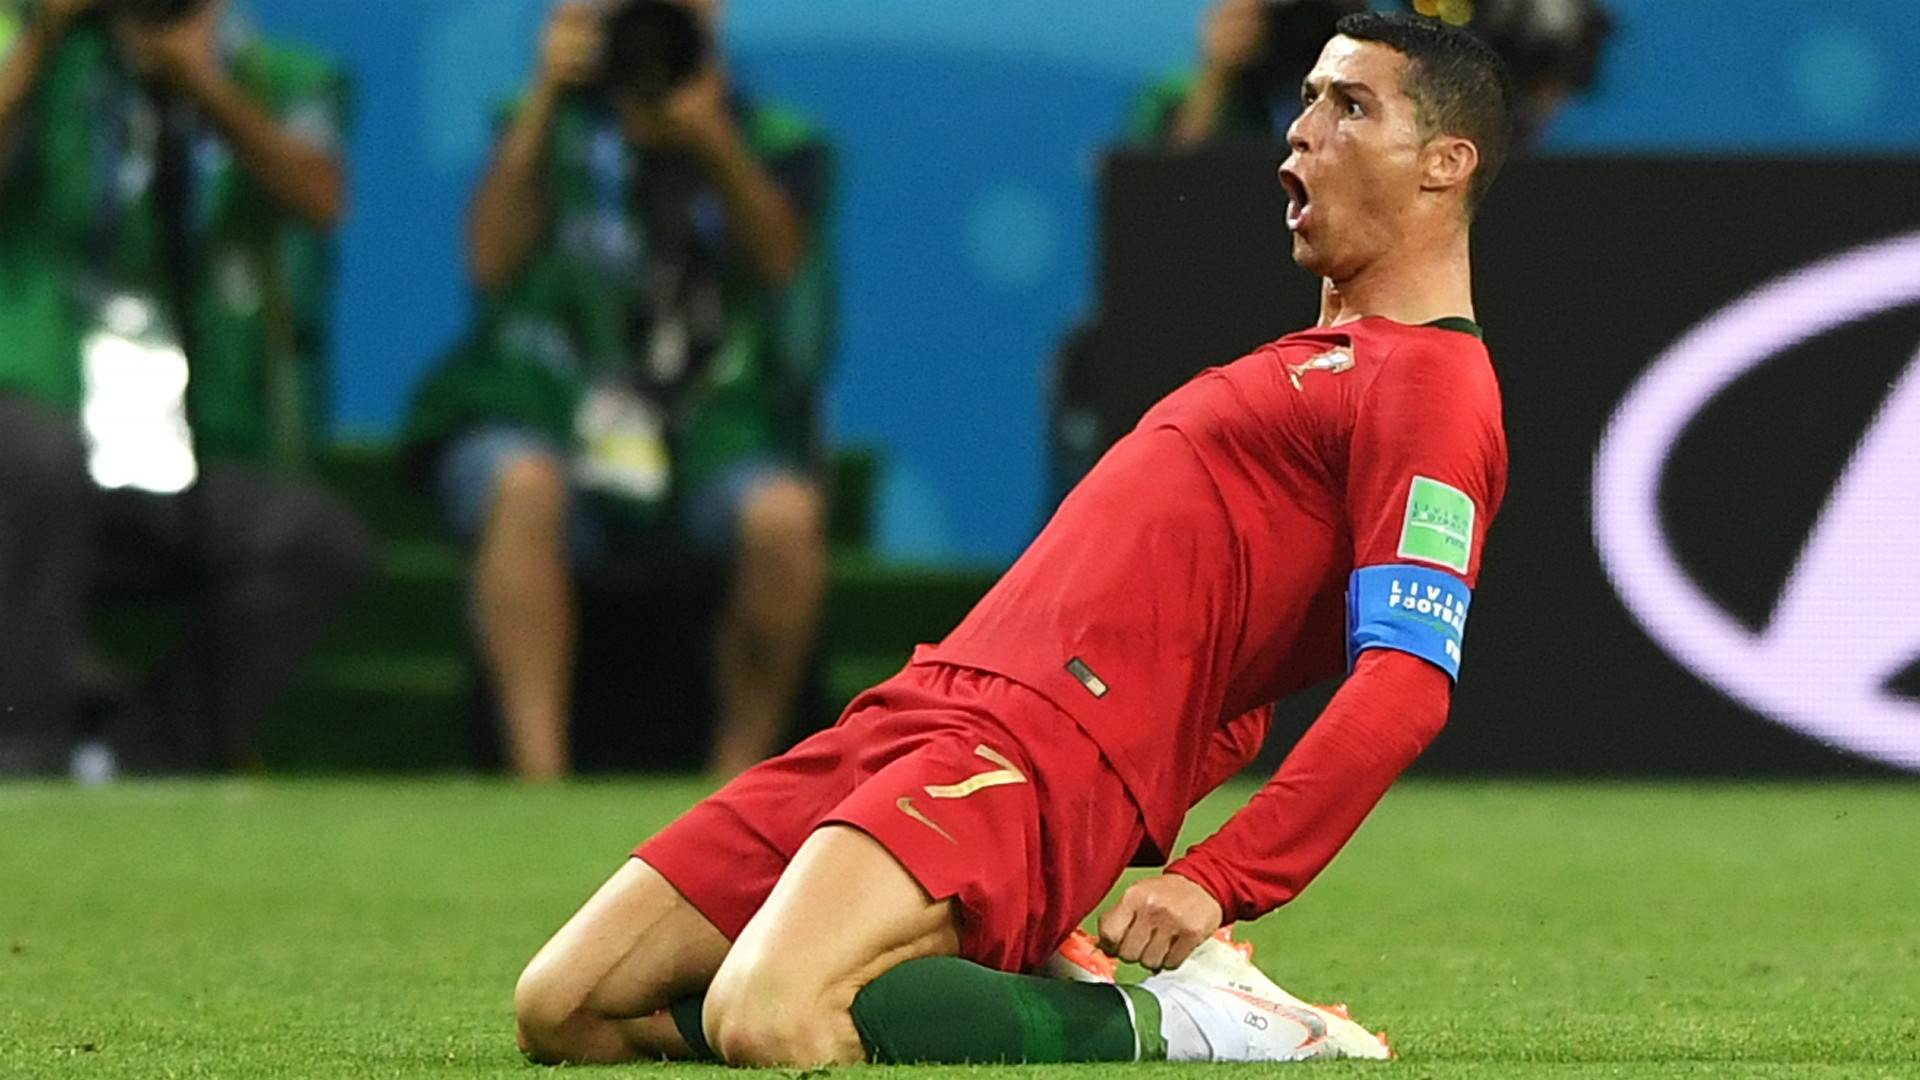 Ronaldo shoulders Portugal against Morocco, becomes top European goalscorer for national teams